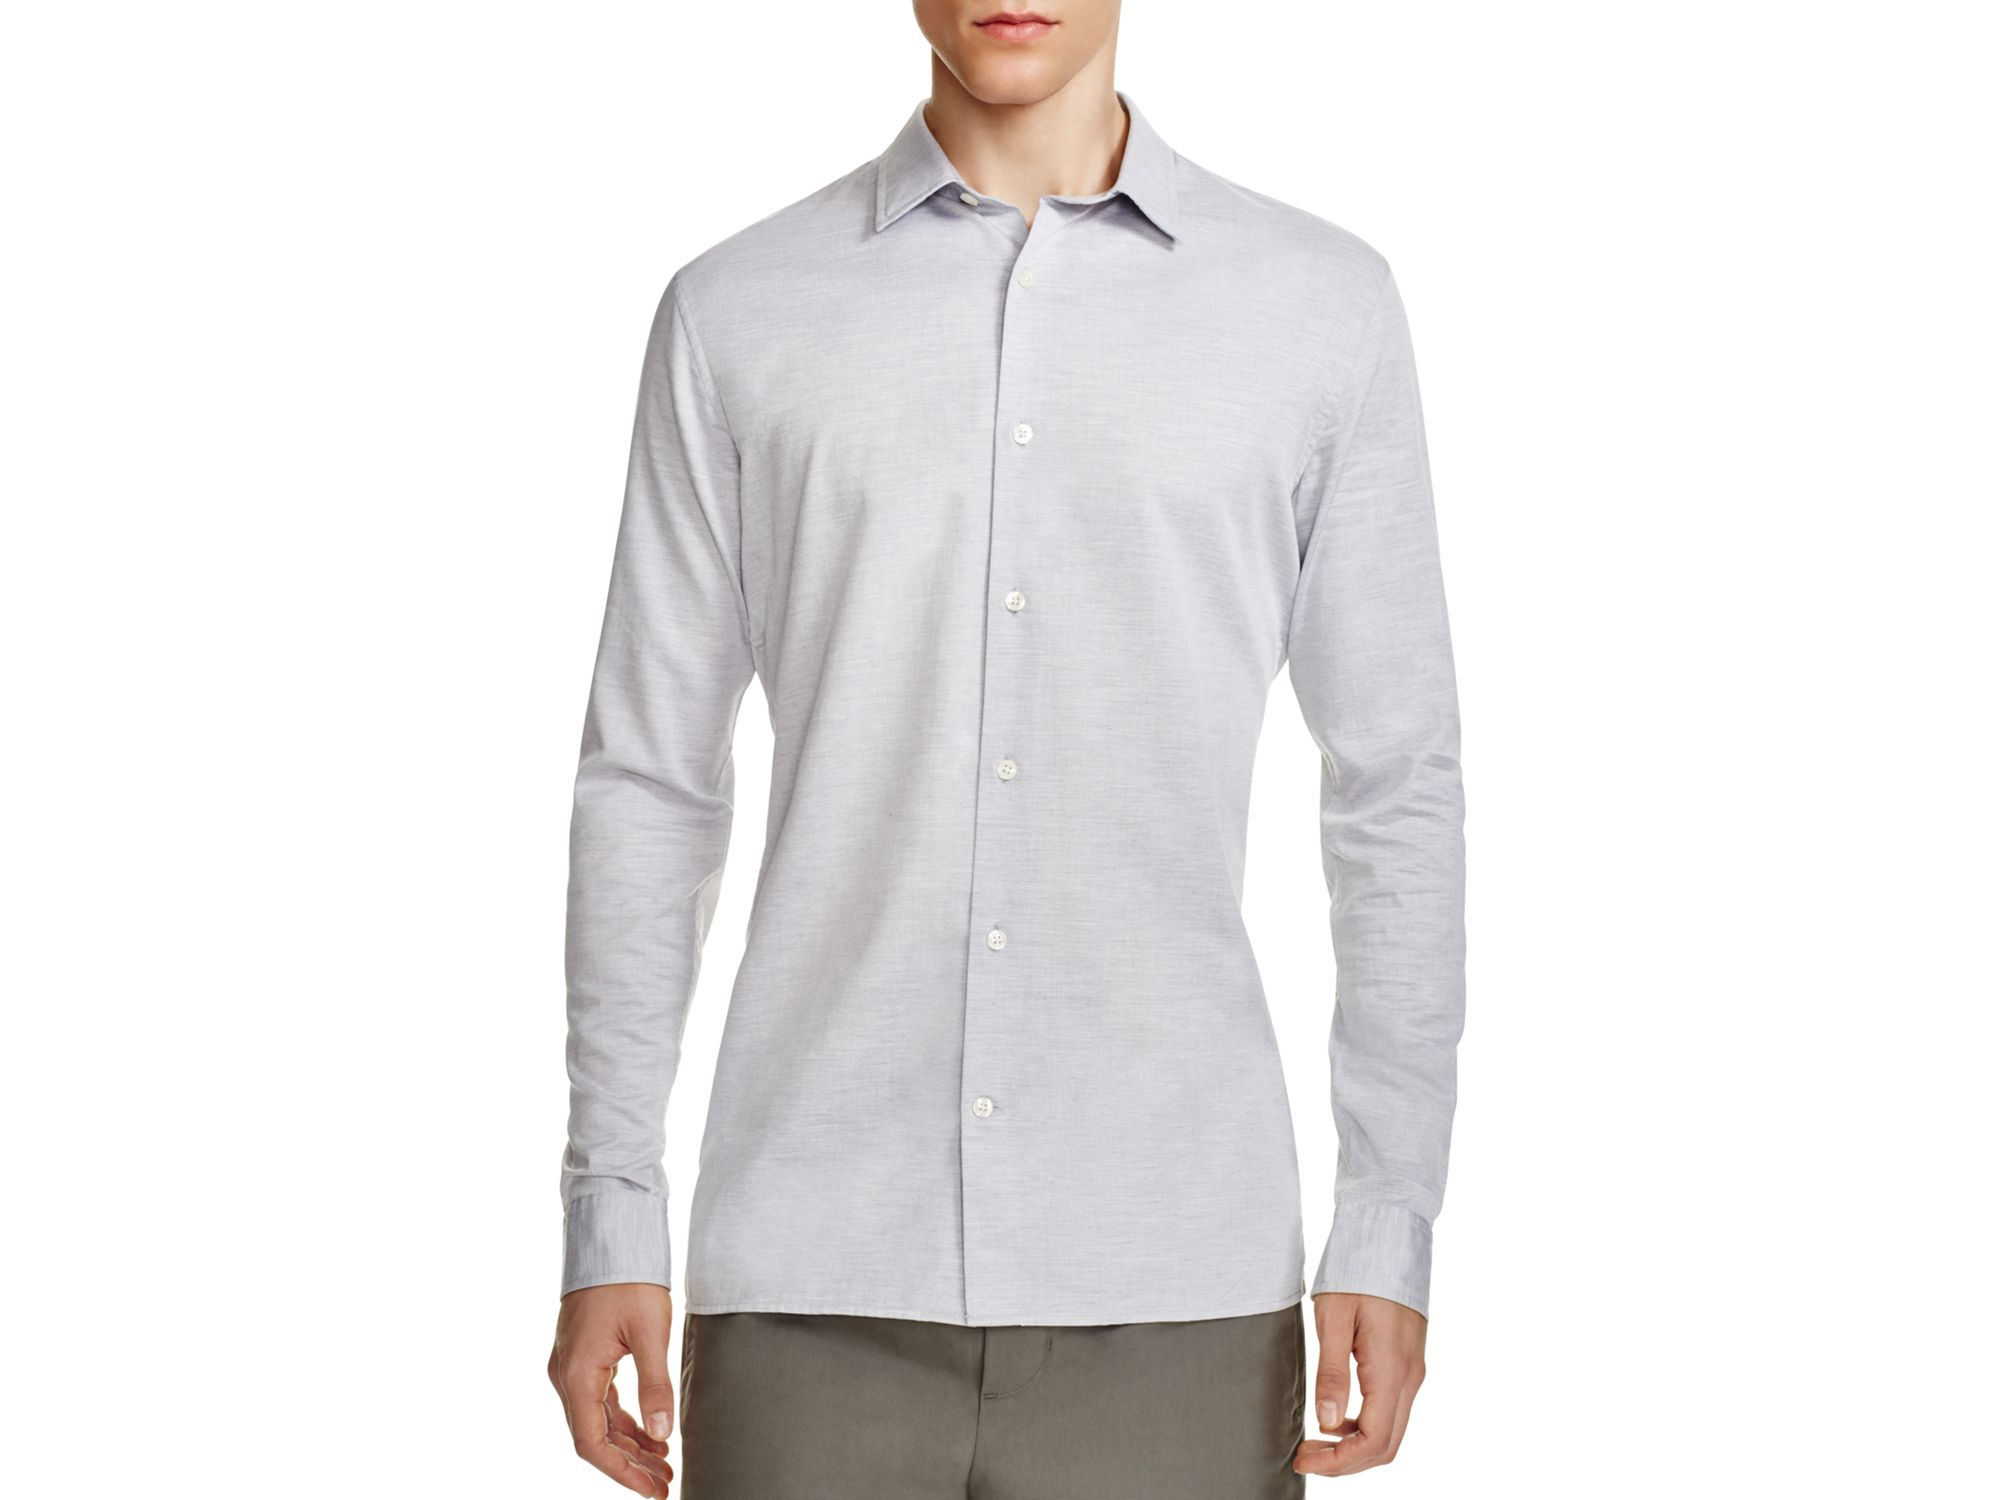 Lyst - Vince Melange Slim Fit Button Down Shirt in Gray for Men